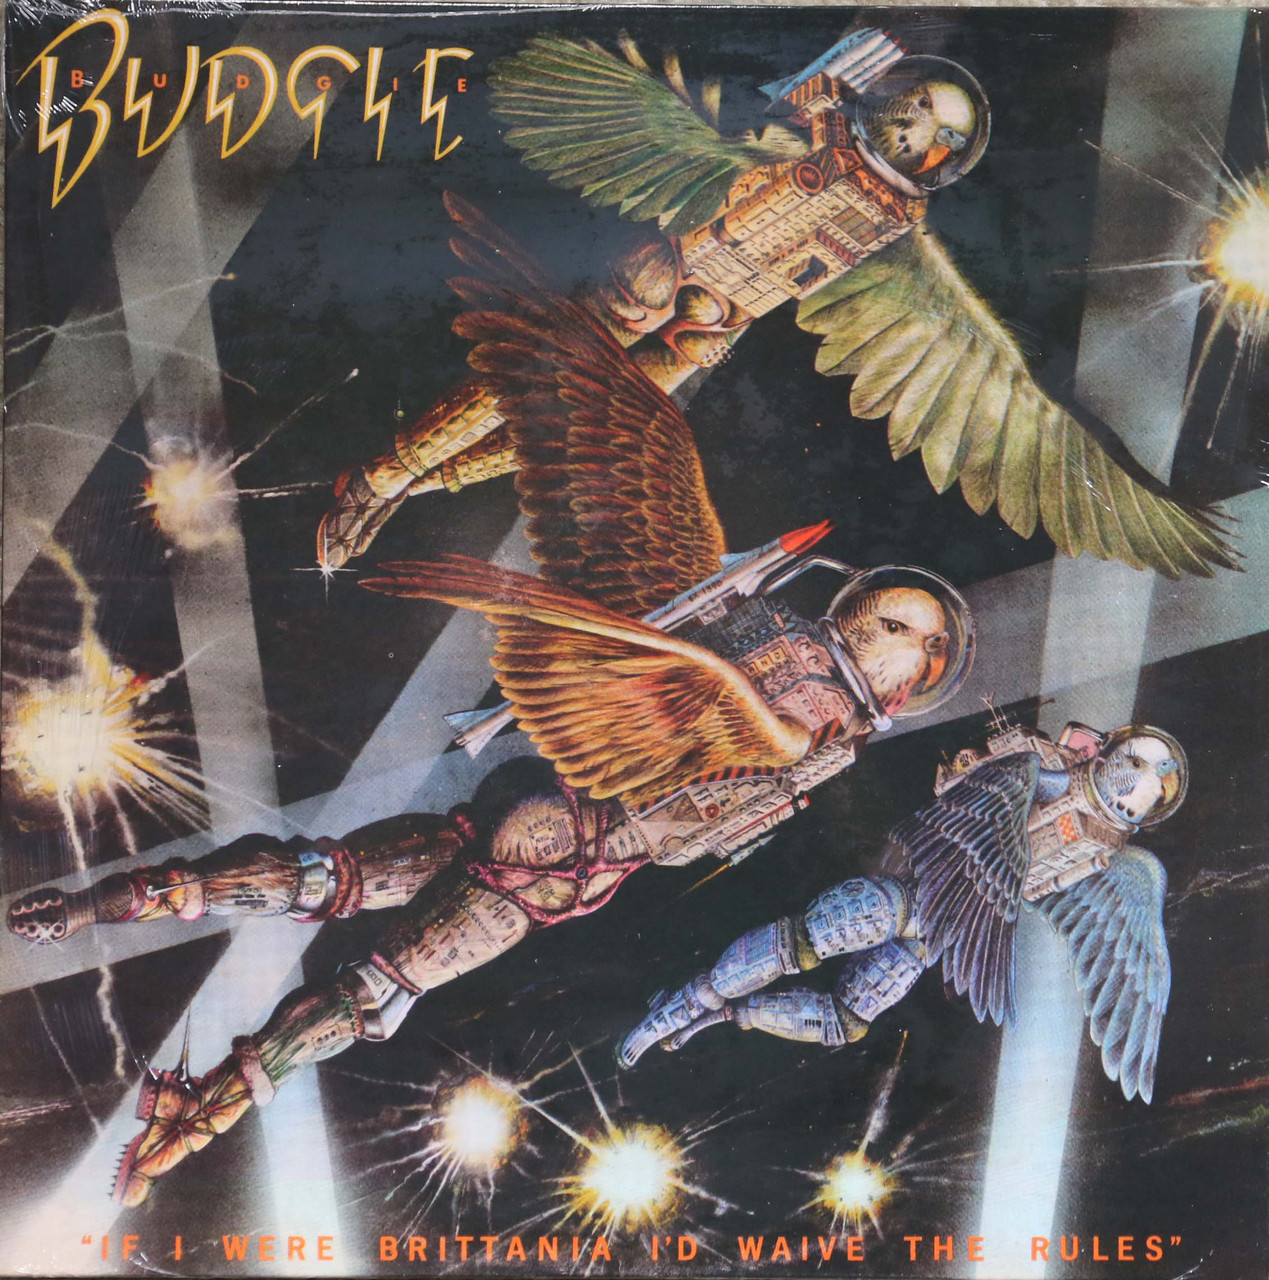 The Best Of Budgie - Budgie mp3 buy, full tracklist